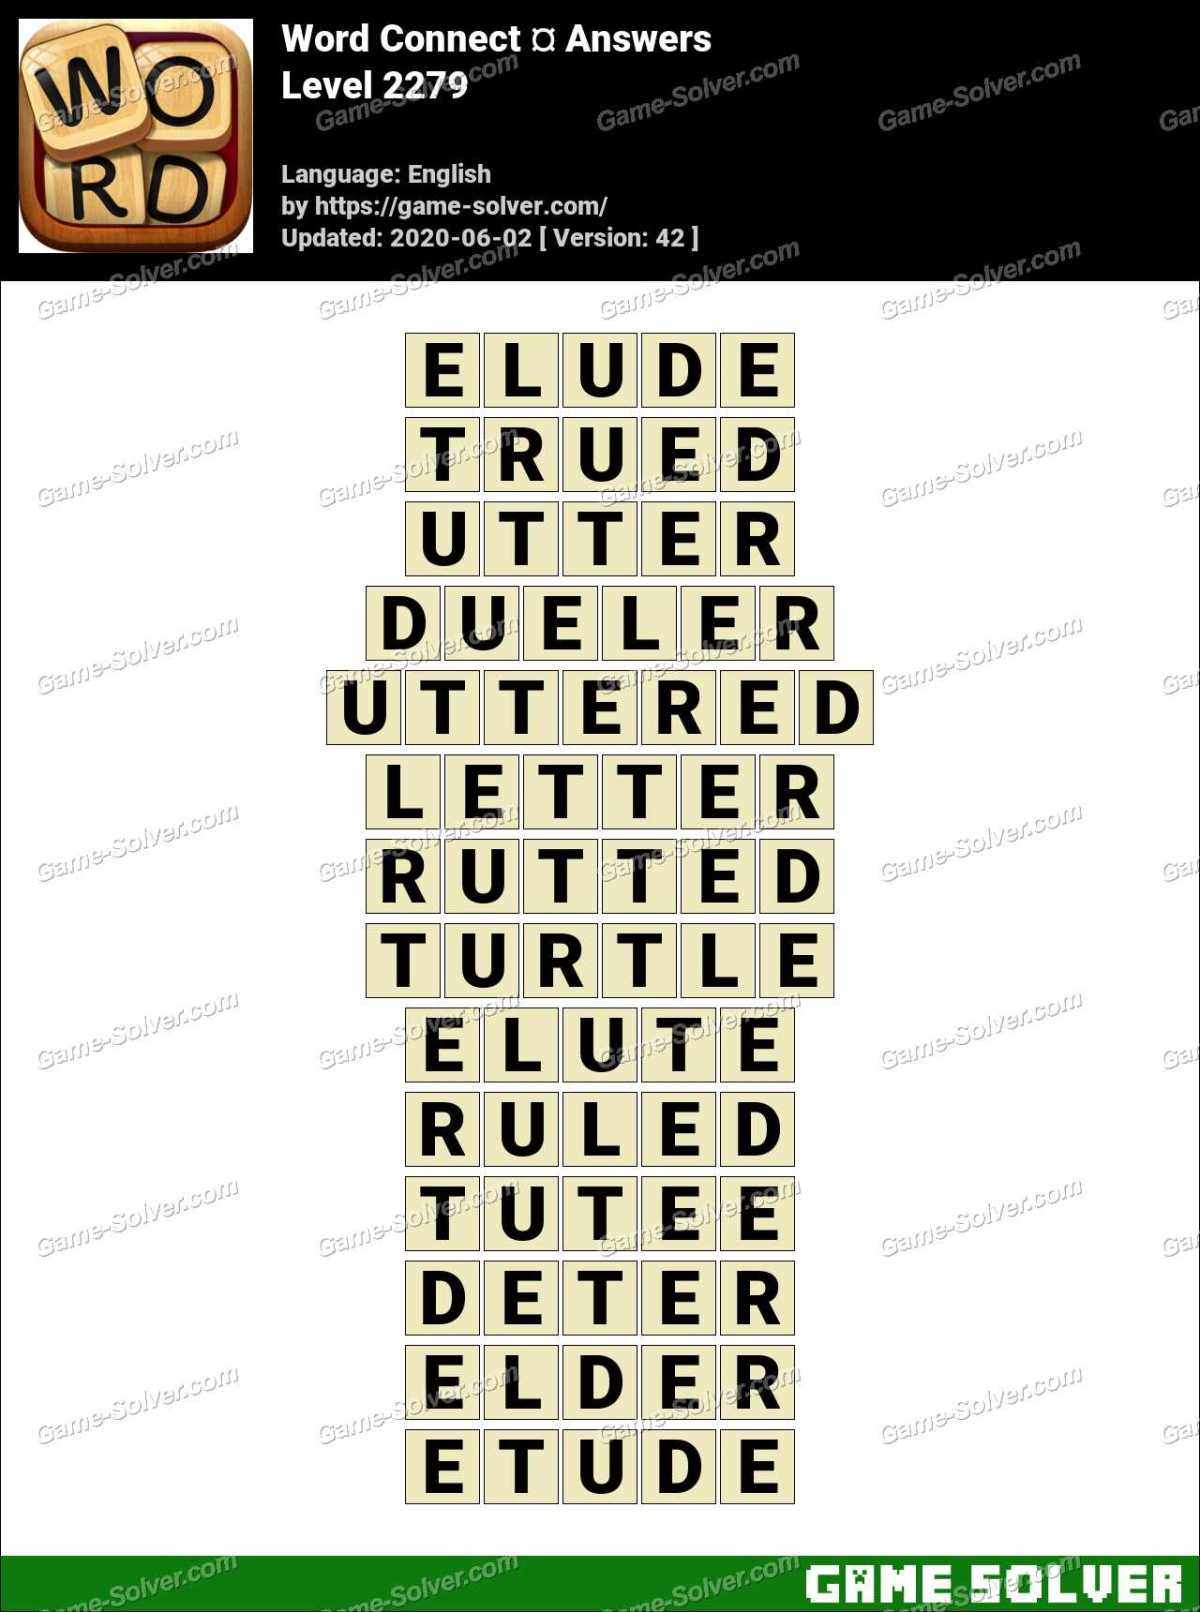 Word Connect Level 2279 Answers